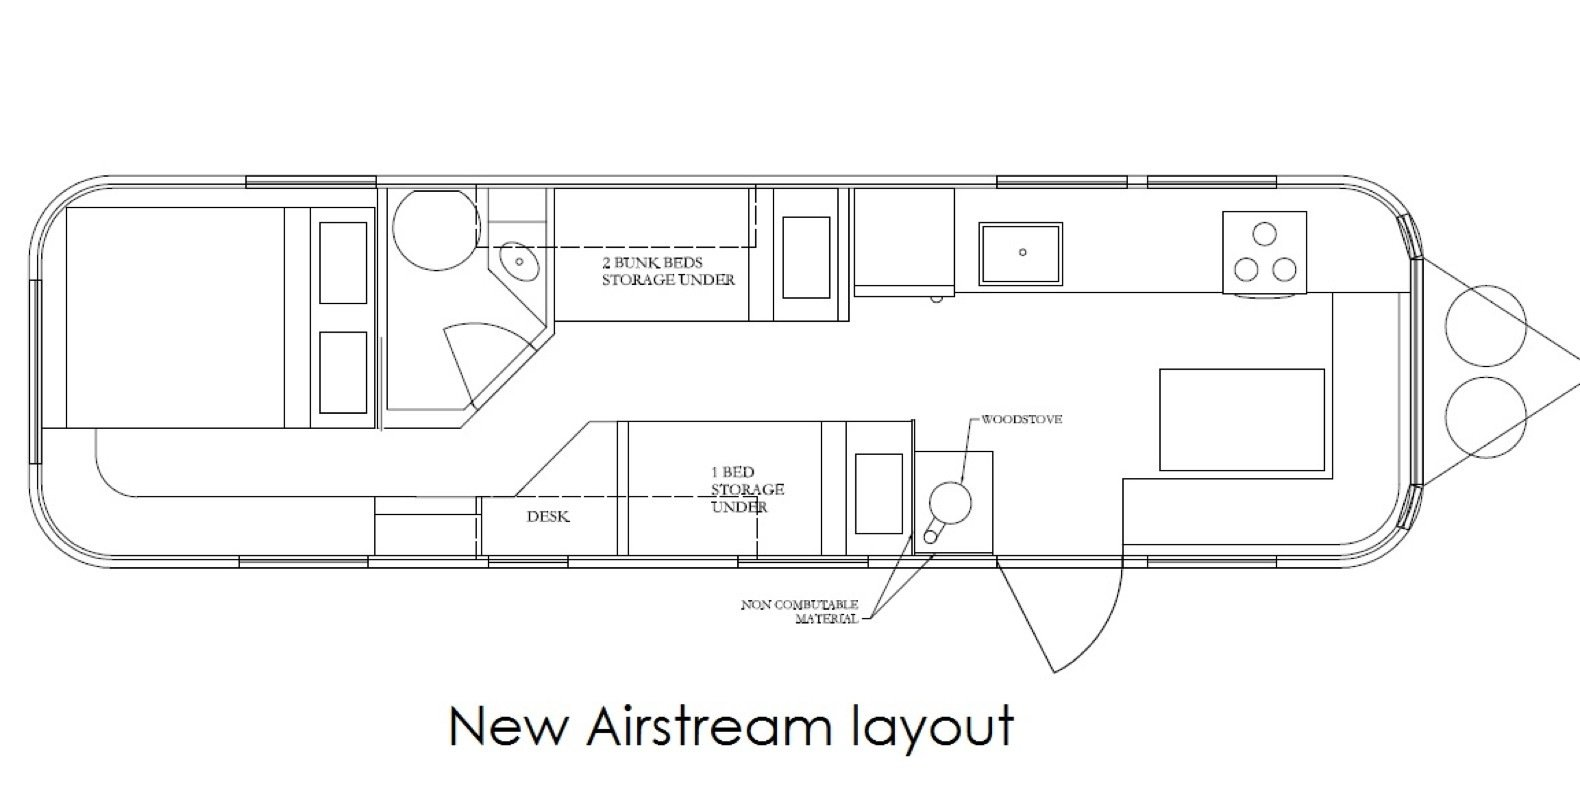 The Airstream's new layout.